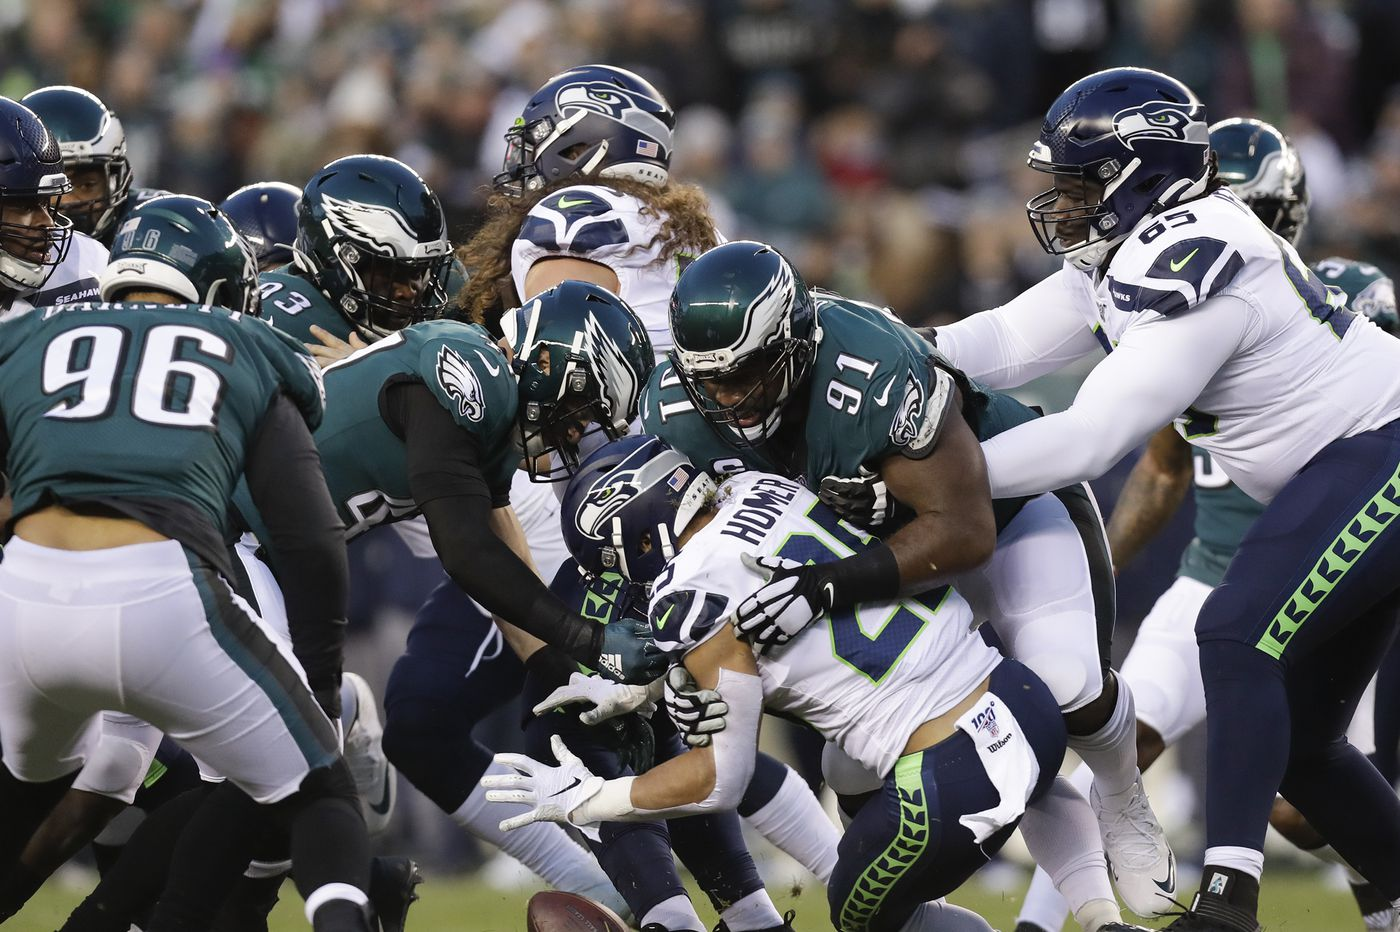 Eagles-Seahawks Up-Down drill: Carson Wentz's injury, Fletcher Cox was a beast, questions about refs